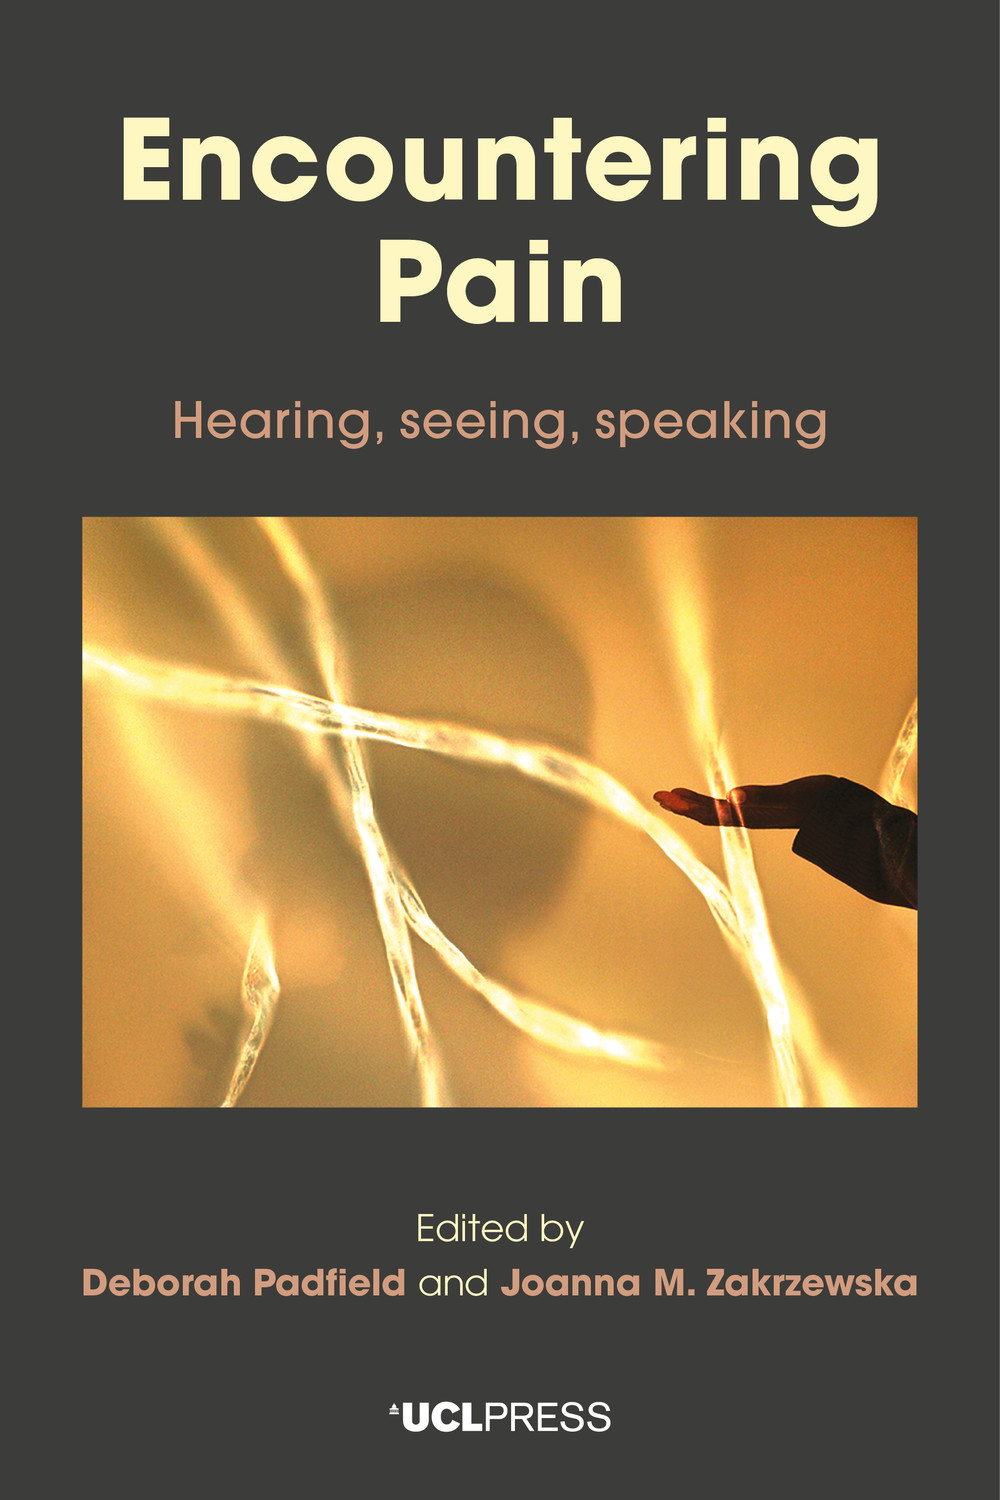 Encountering Pain Hearing, seeing, speaking published by UCL Press